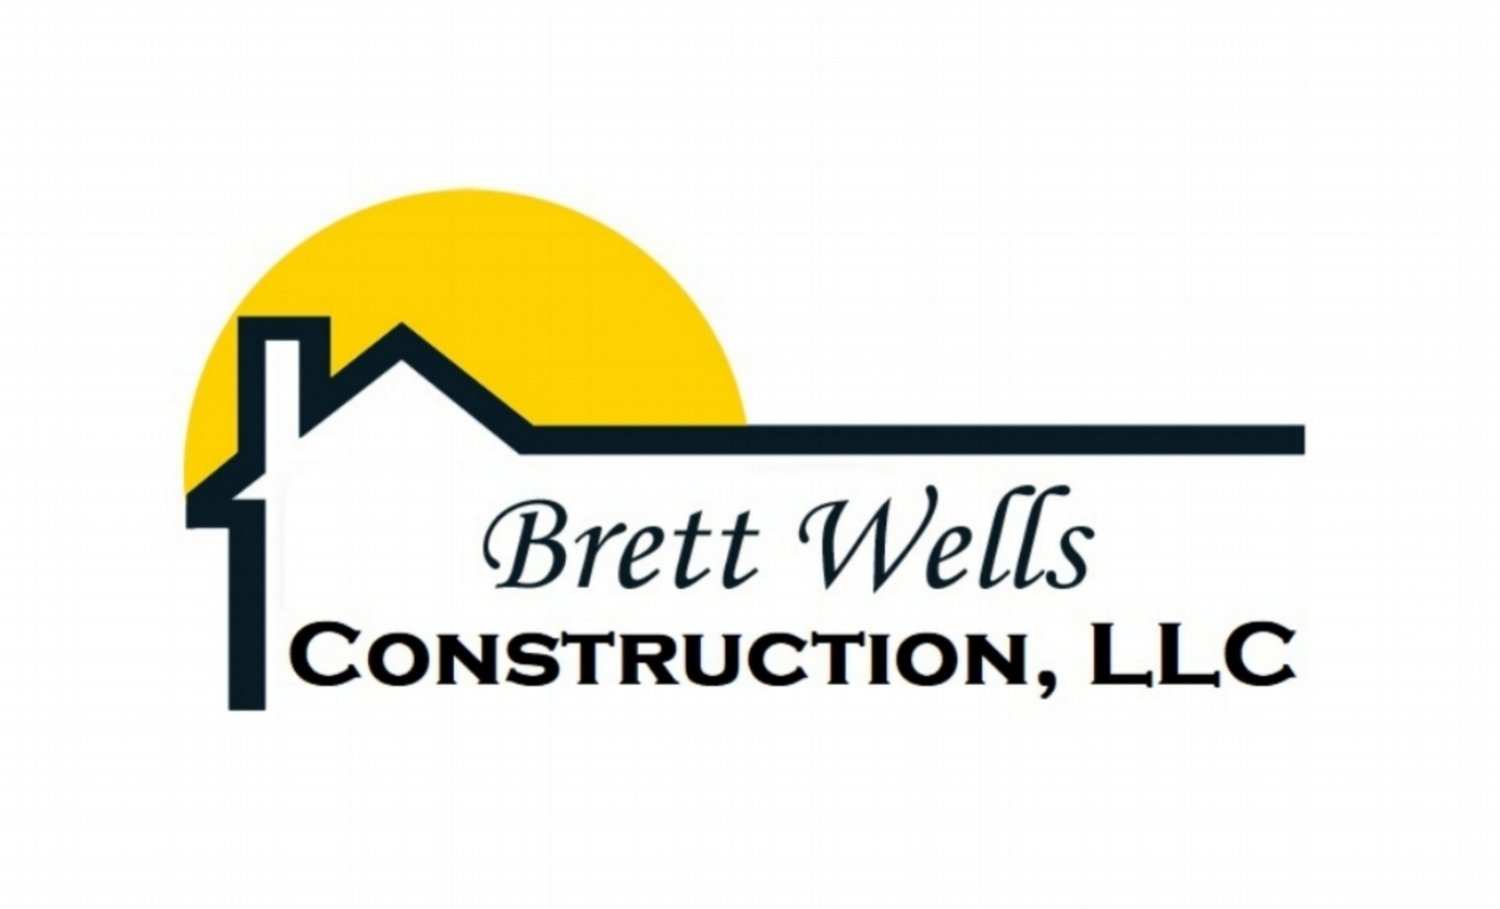 Brett Wells Construction, LLC